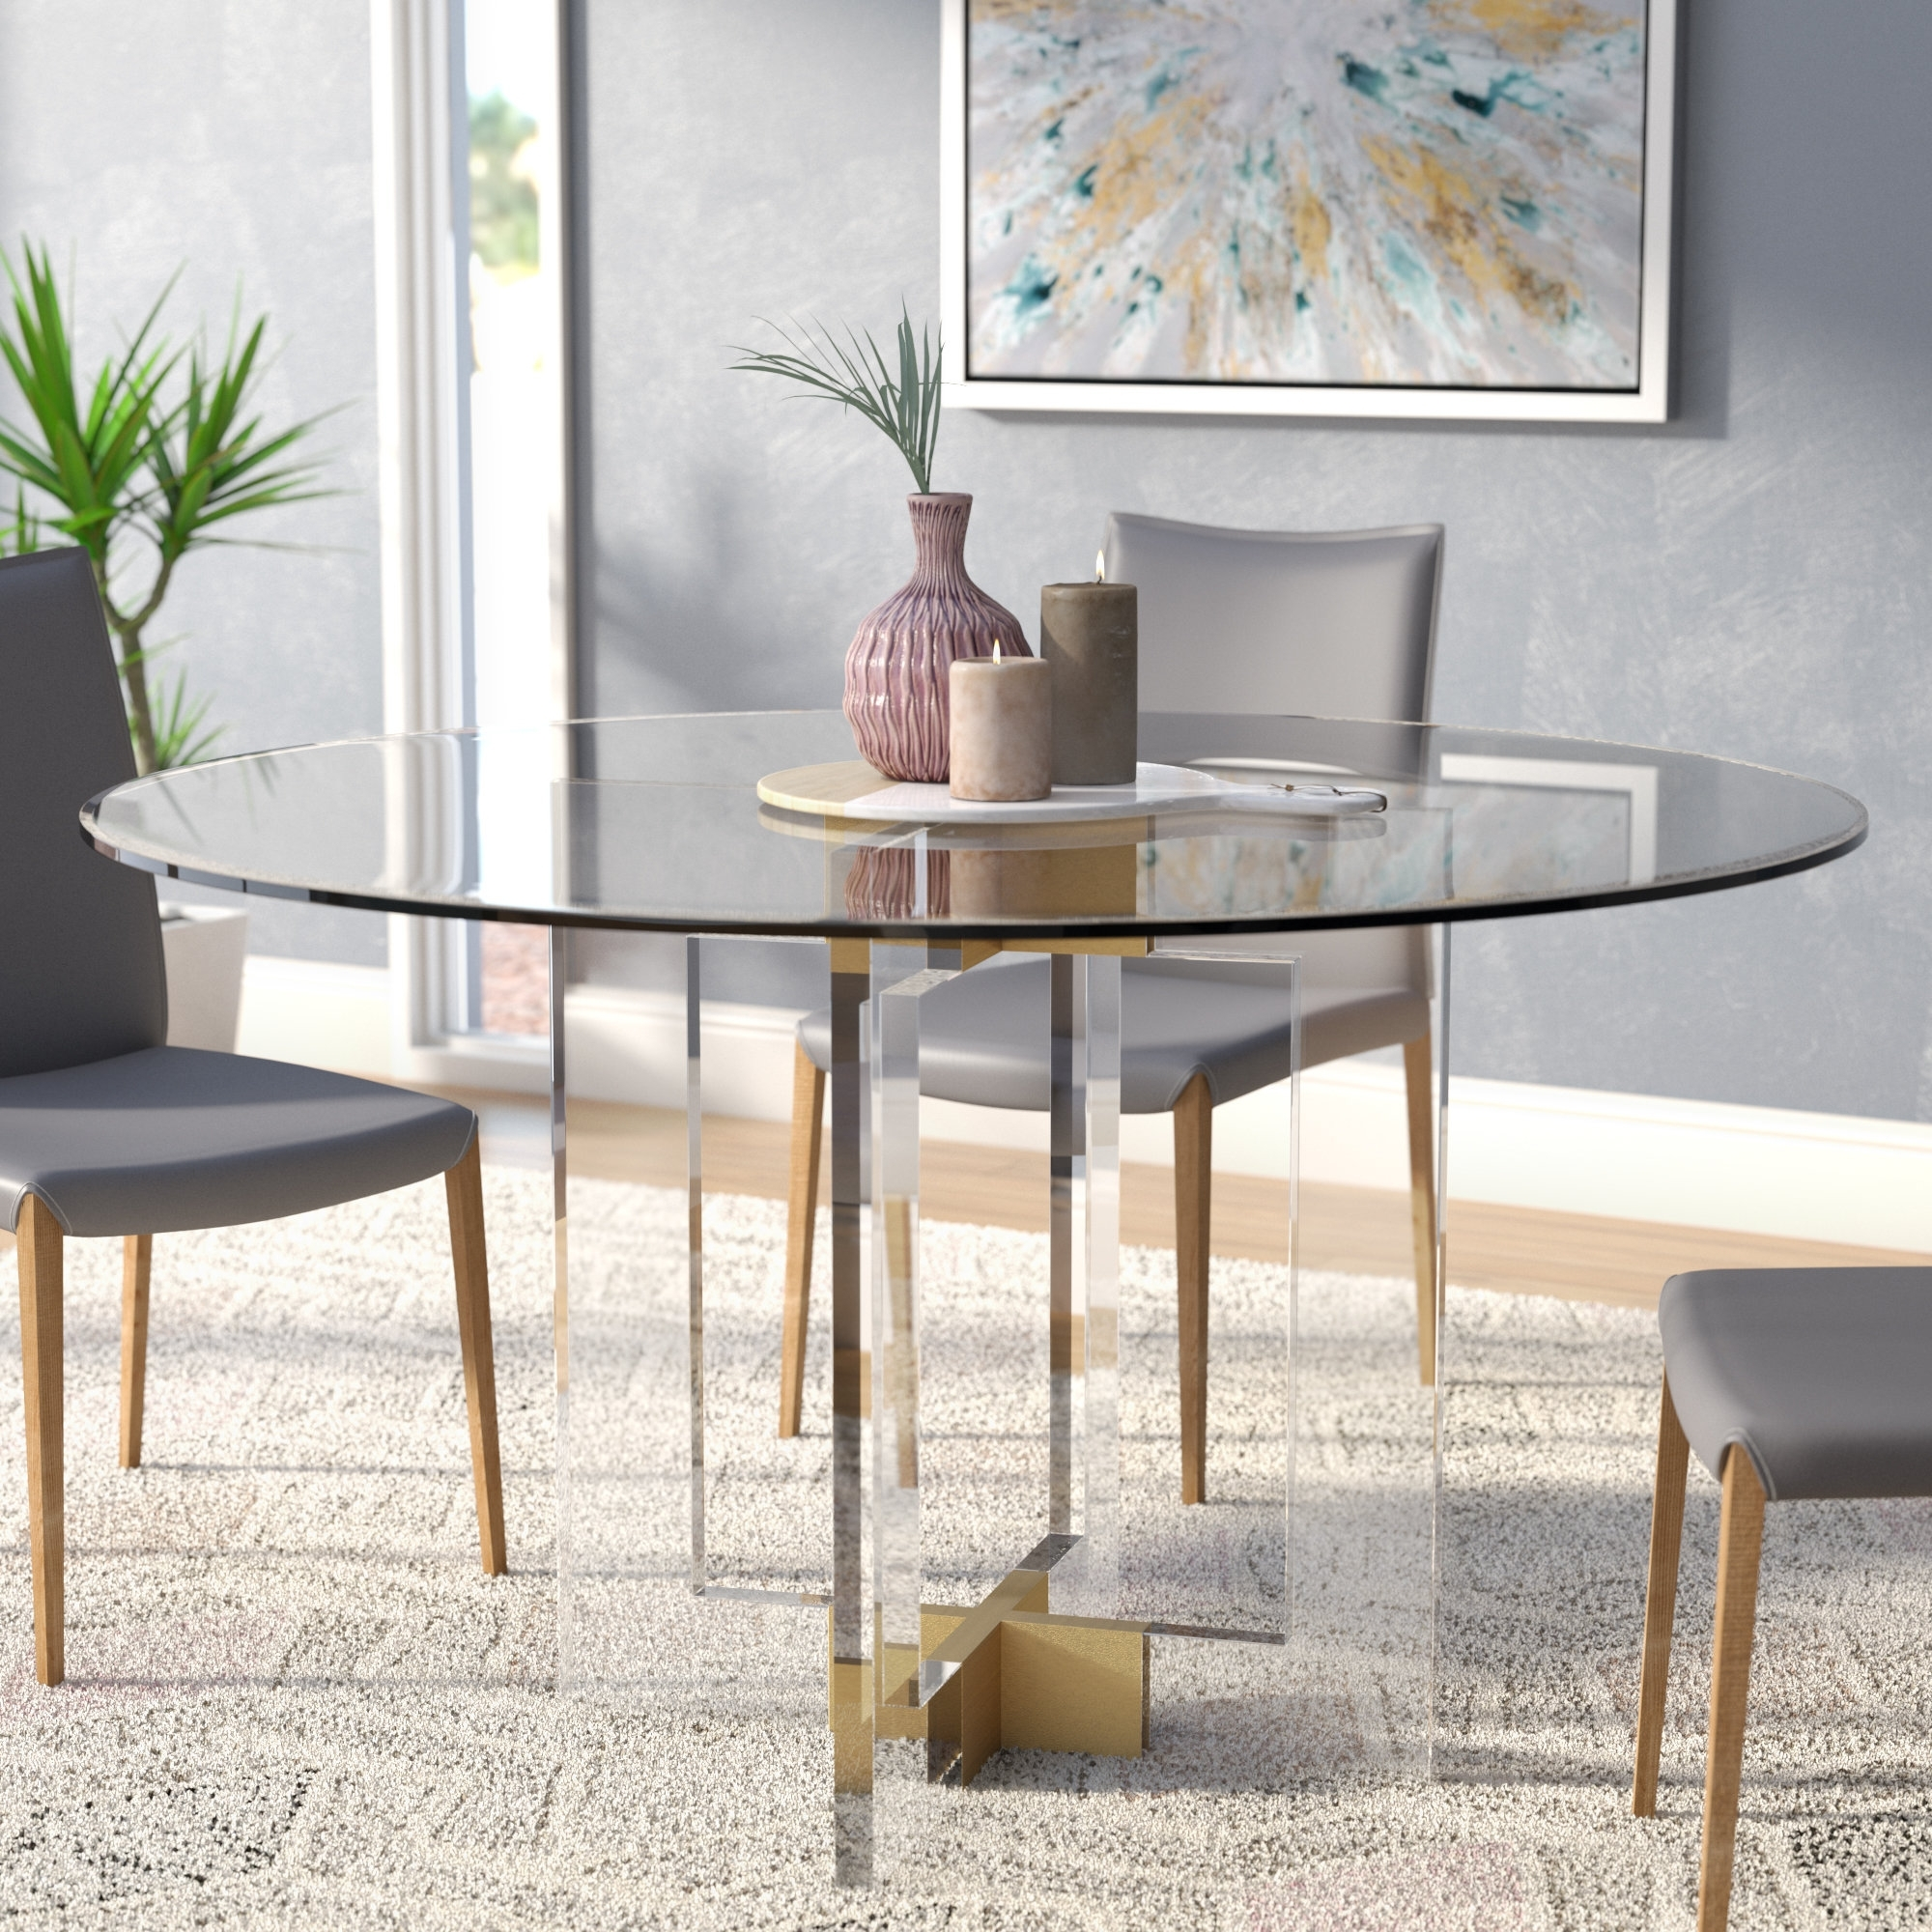 Well Liked Glasses Dining Tables Intended For Willa Arlo Interiors Gosta Round Glass Dining Table (View 16 of 25)